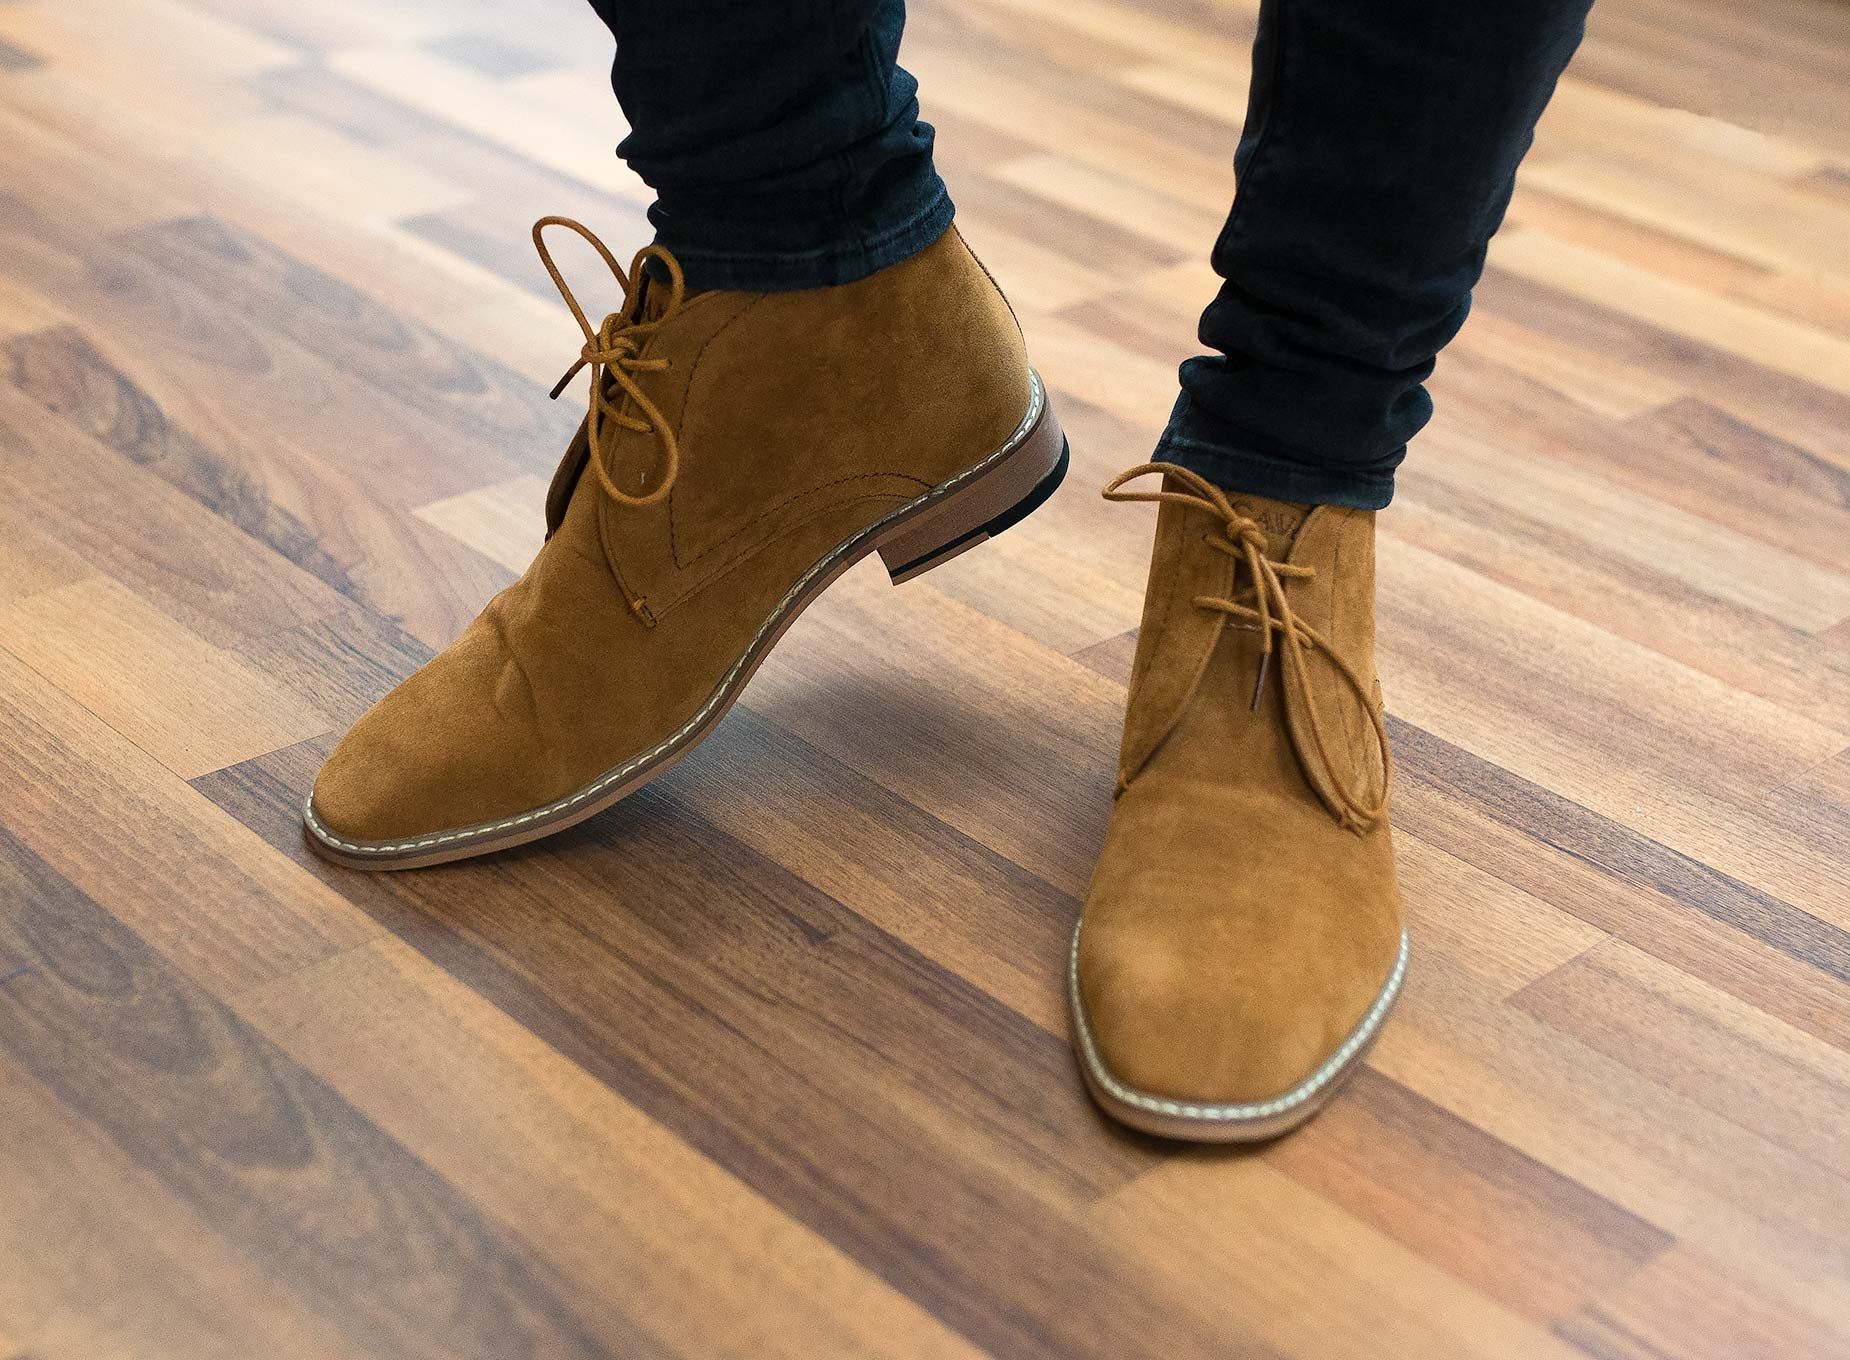 House Of Cavani James Tan Boots Review